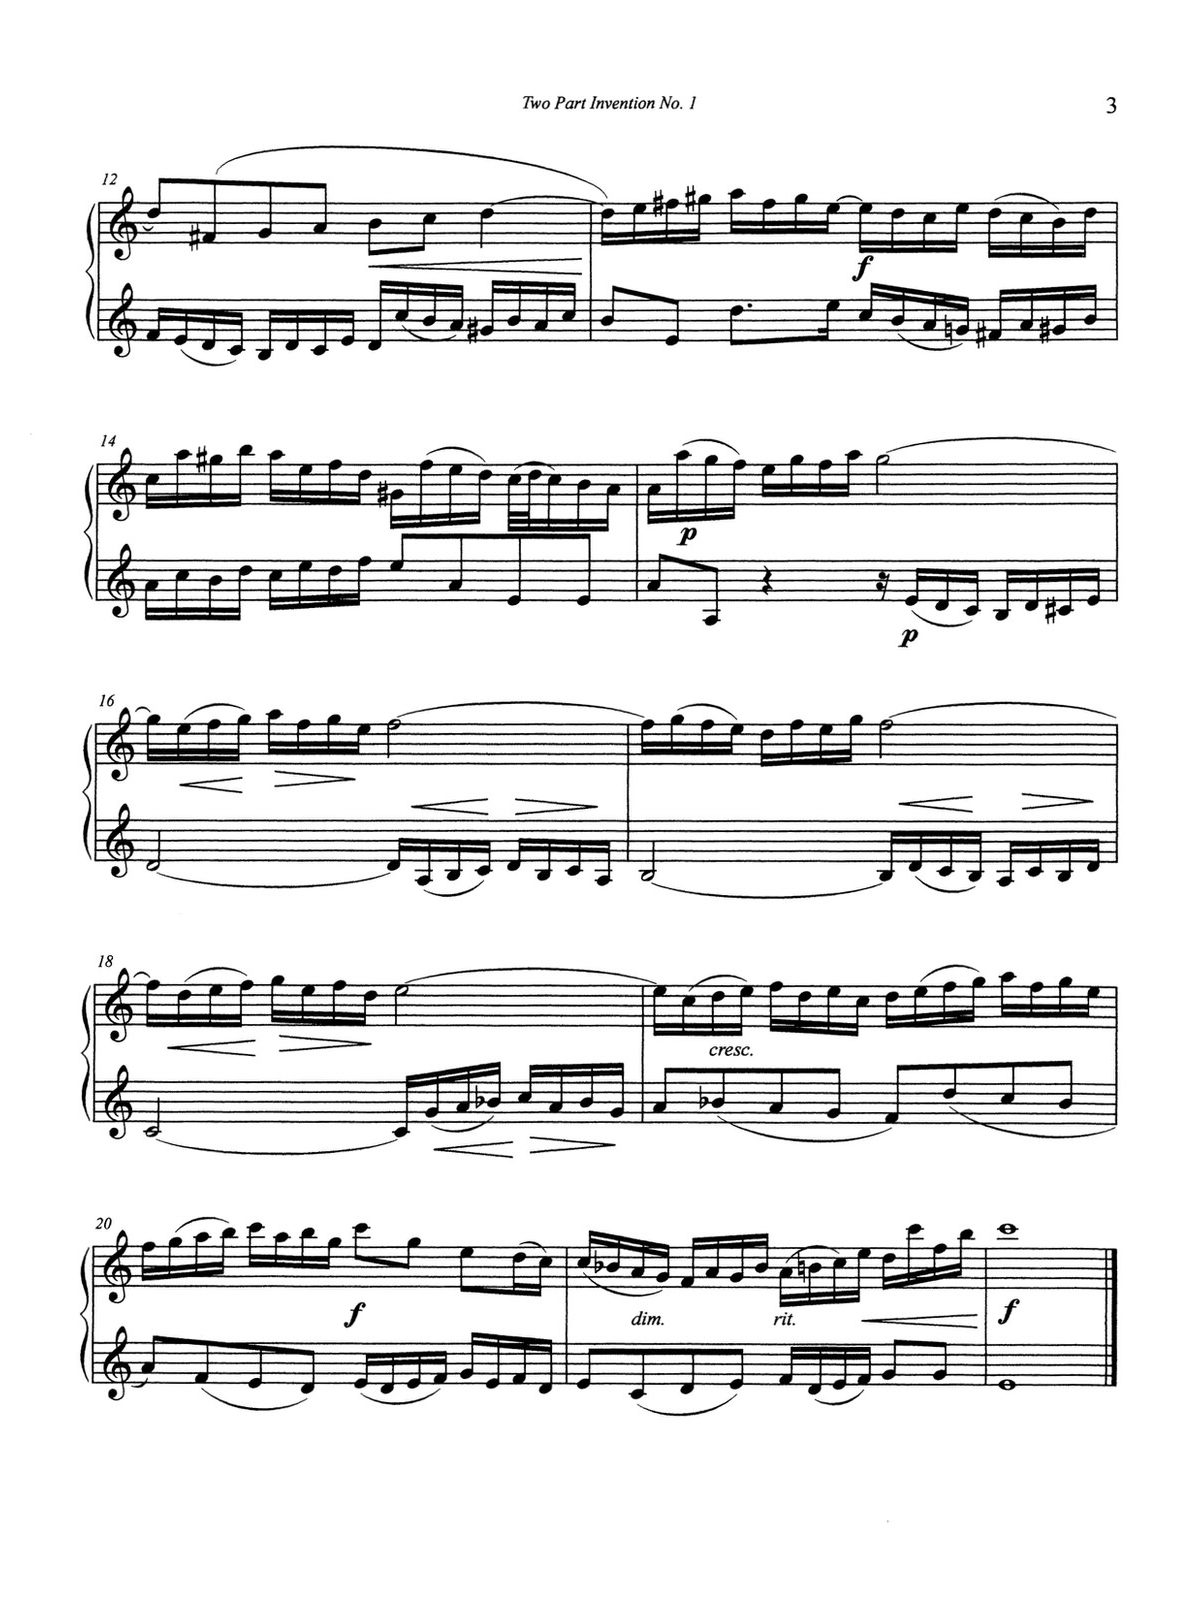 Barranco-Derasse, Bach 2 Part Inventions for Trumpet-p05